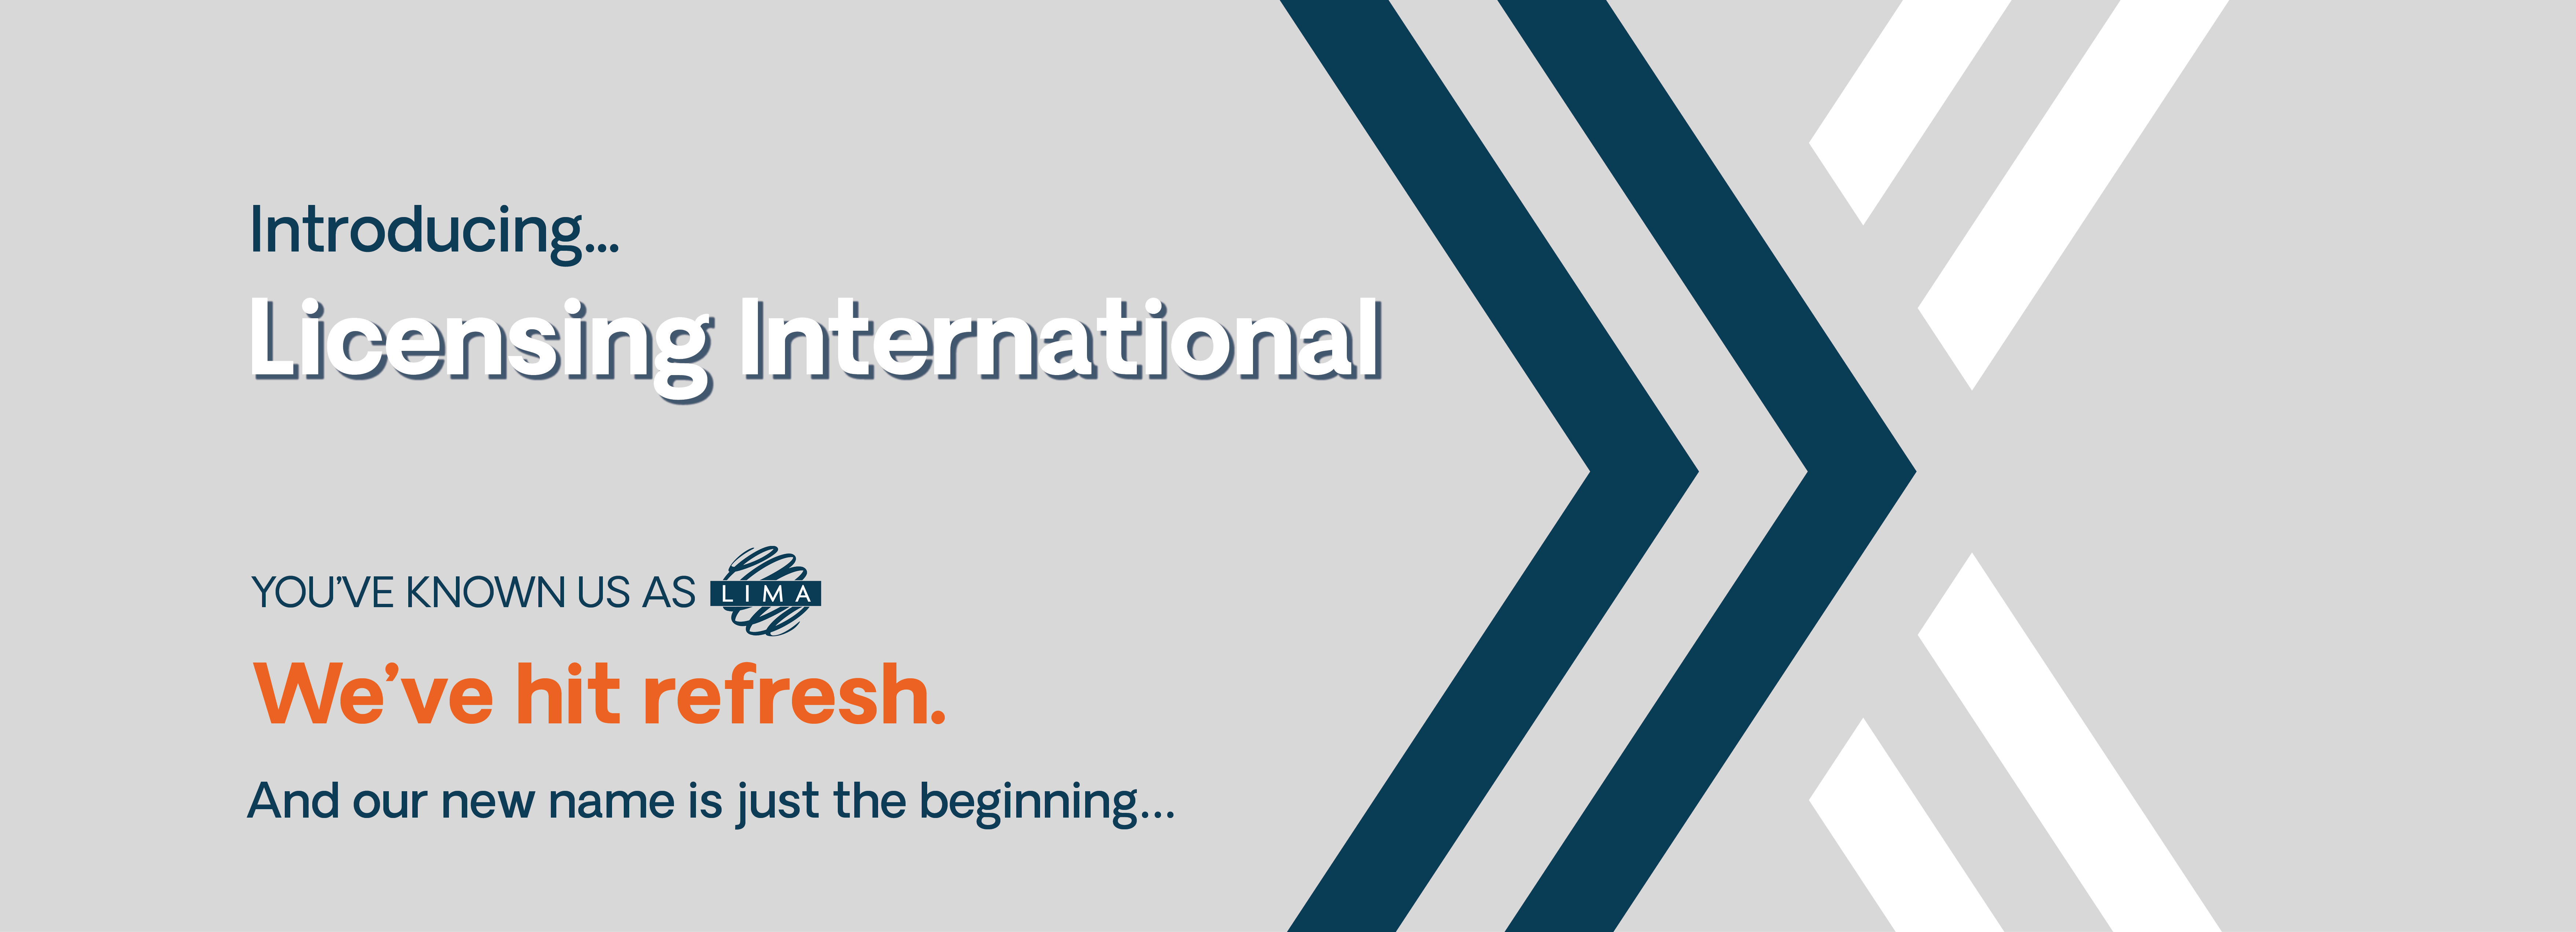 Welcome to LicensingInternational.org